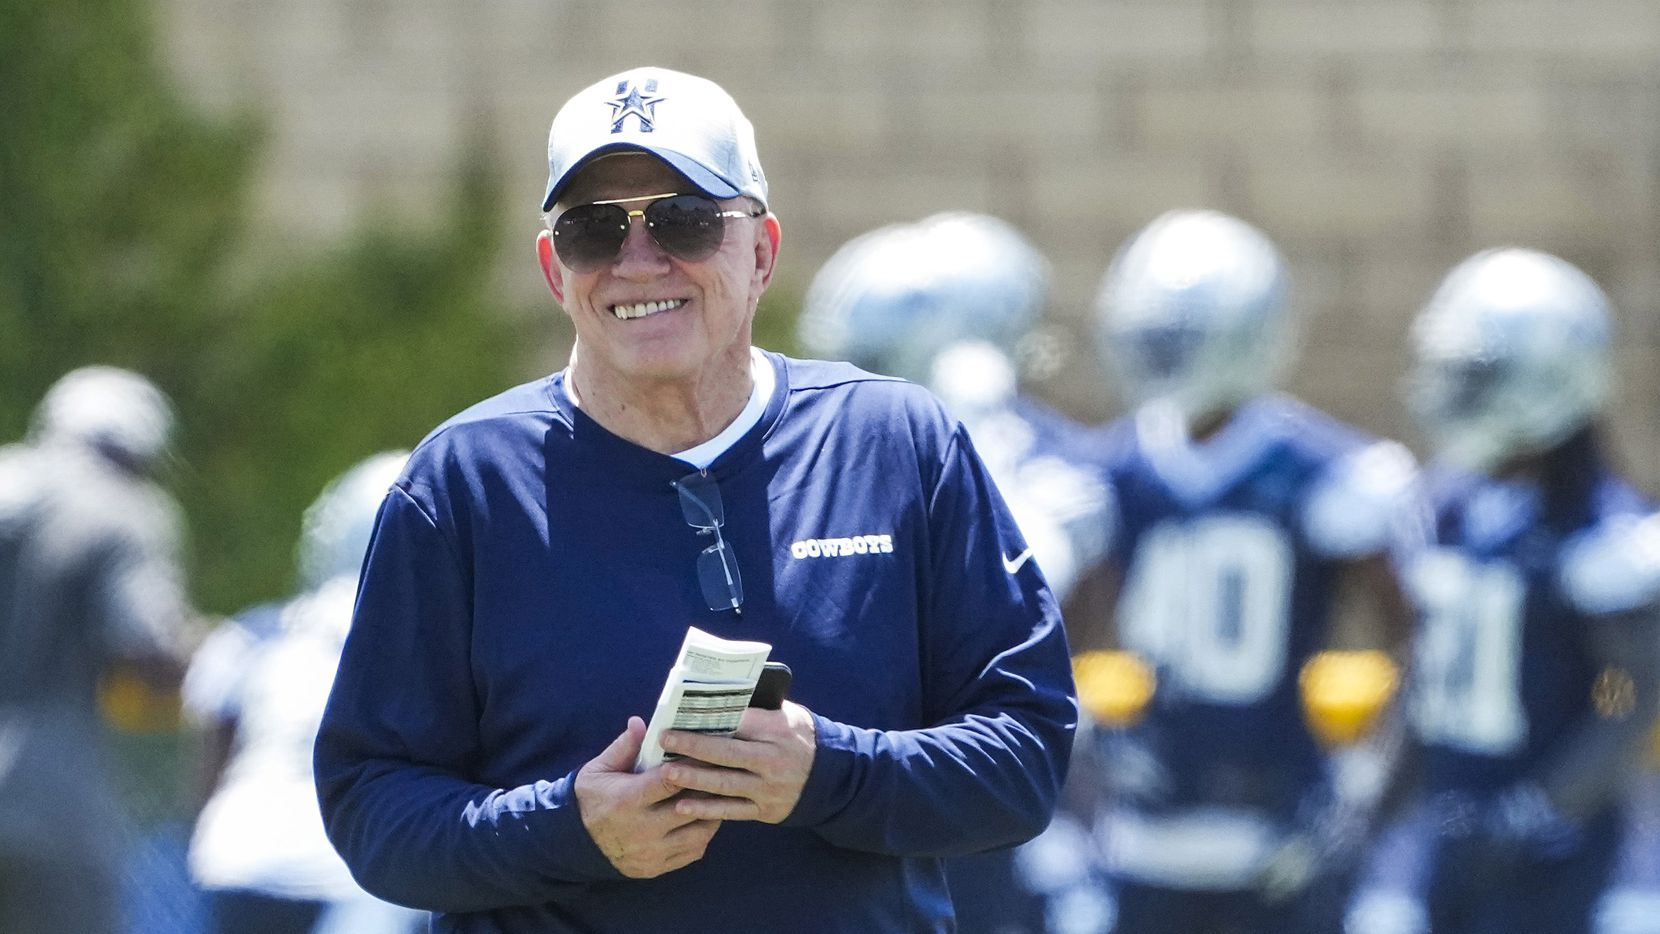 Dallas Cowboys owner and general manager Jerry Jones watches the first practice of the team's training camp on Thursday, July 22, 2021, in Oxnard, Calif.